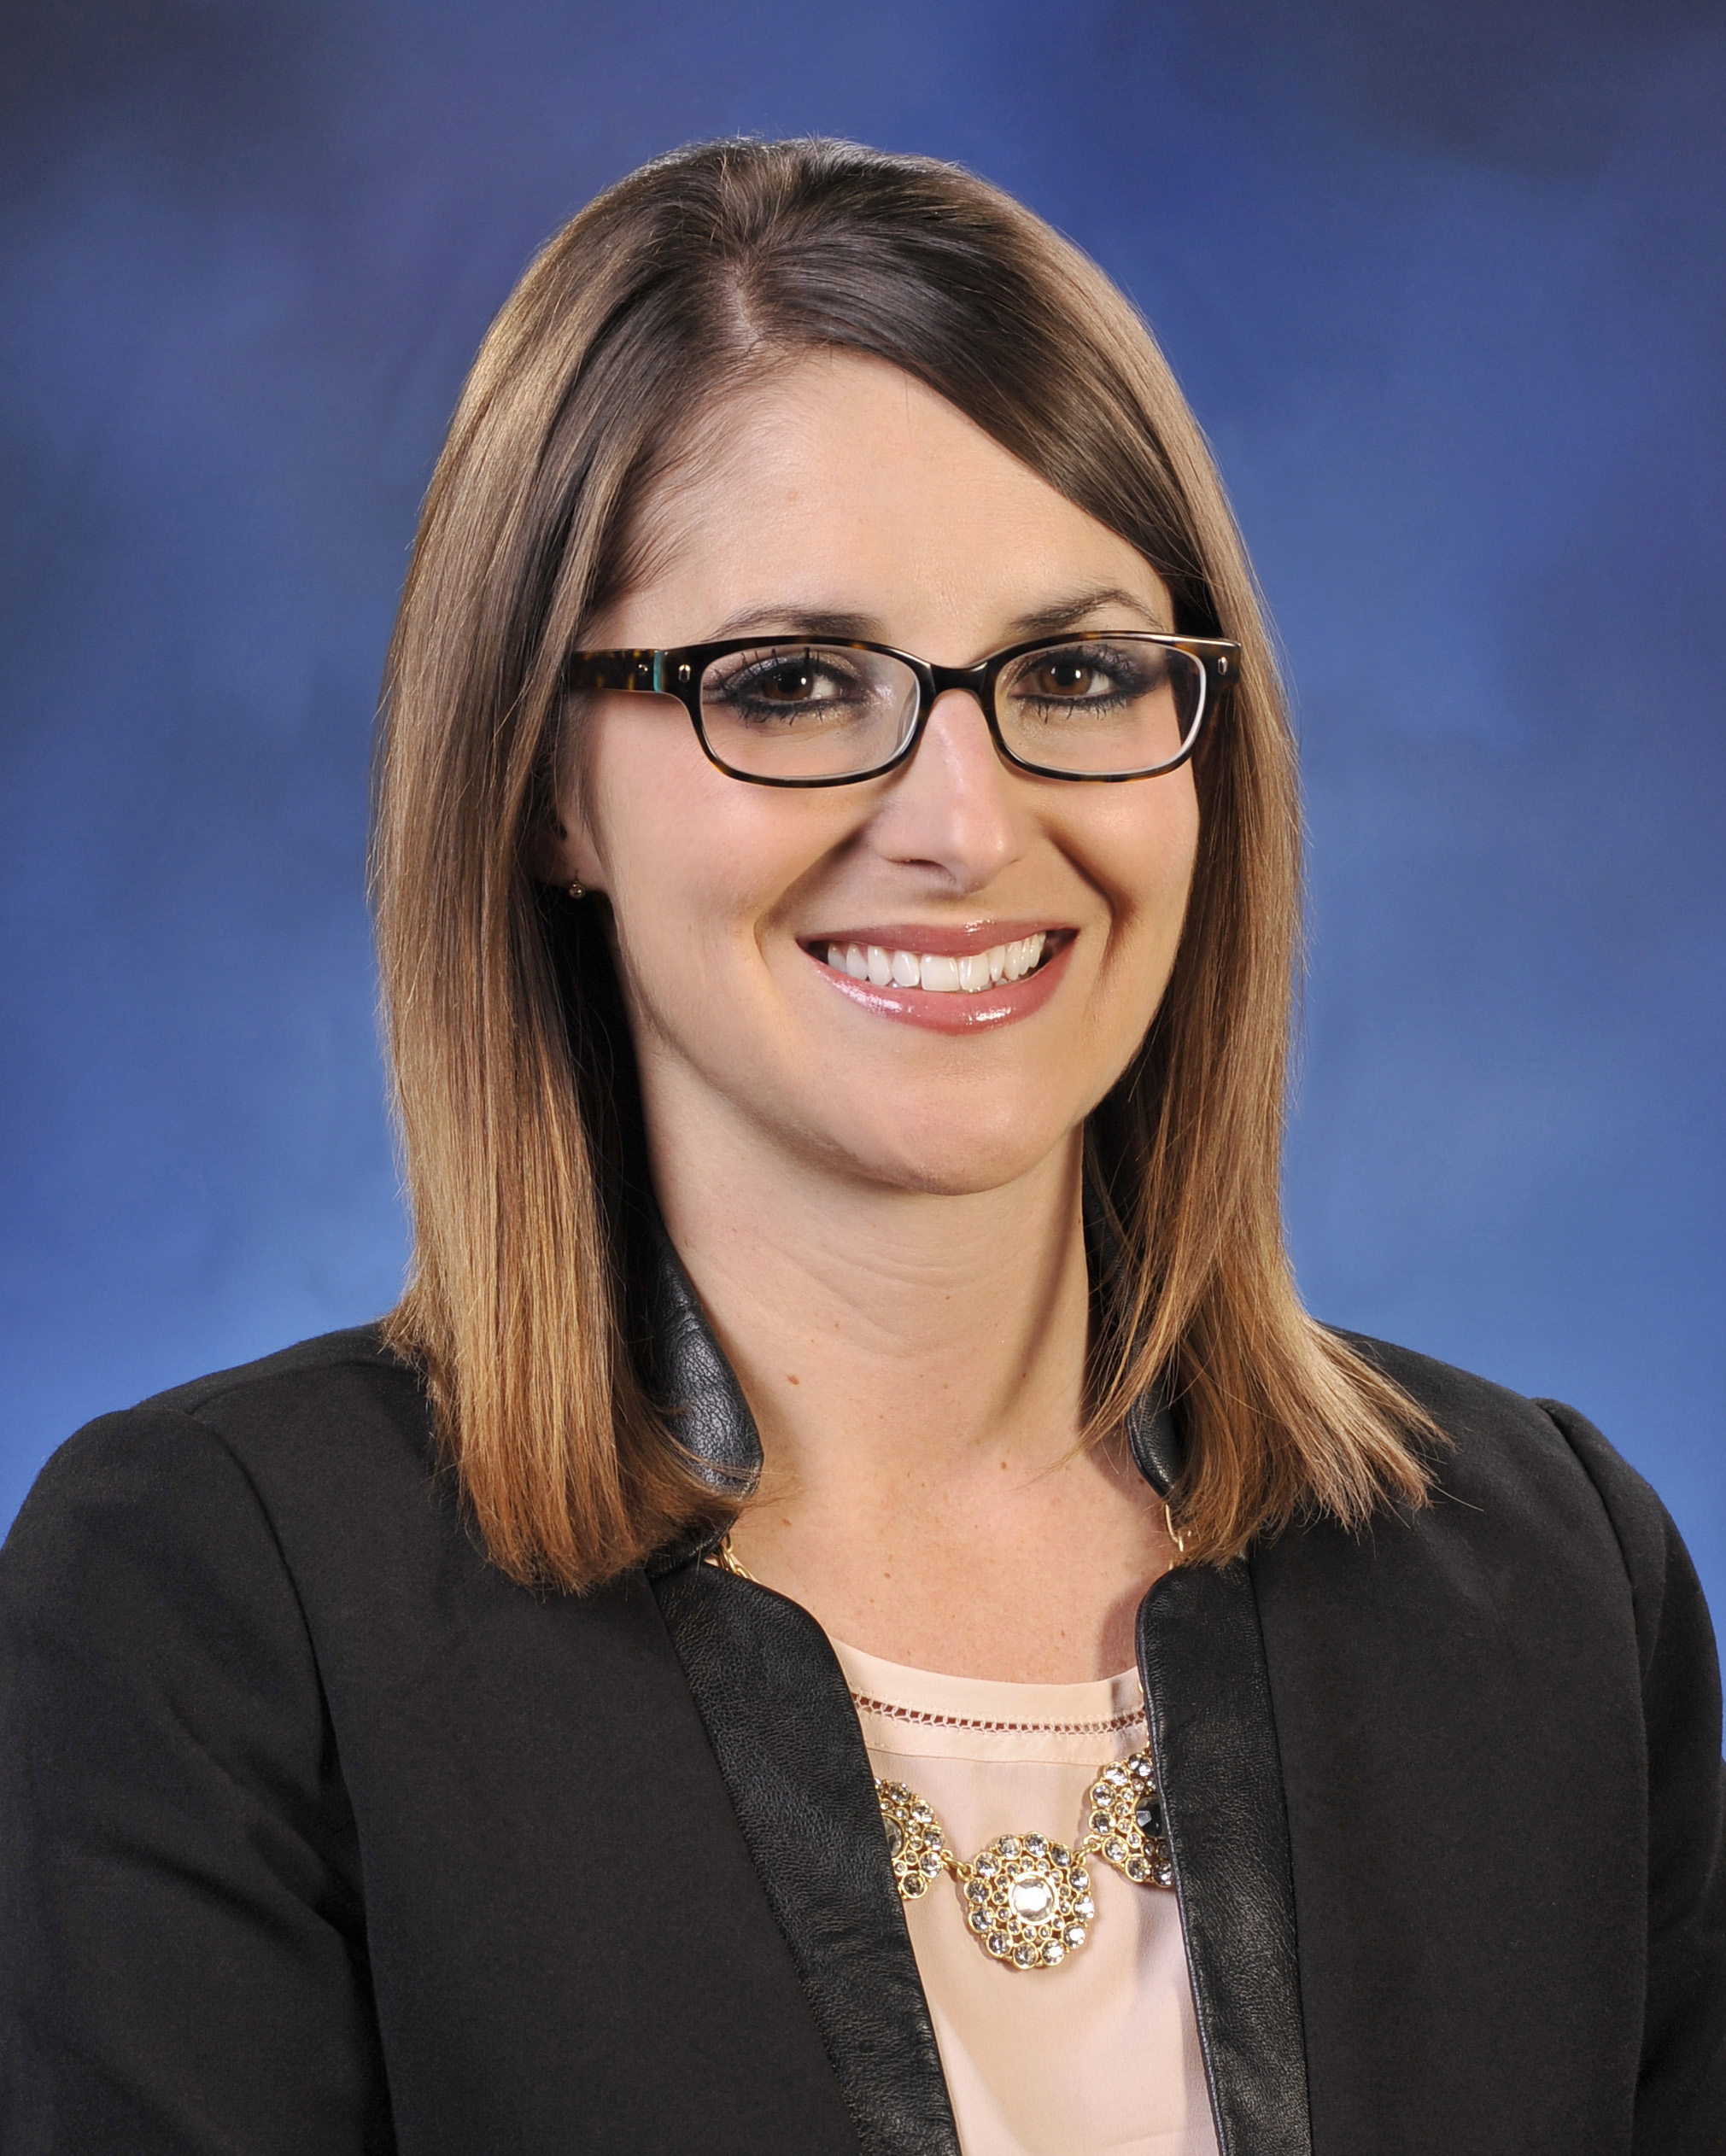 HSHS appoints Catie Sheehan as Vice President, Advocacy and Communications